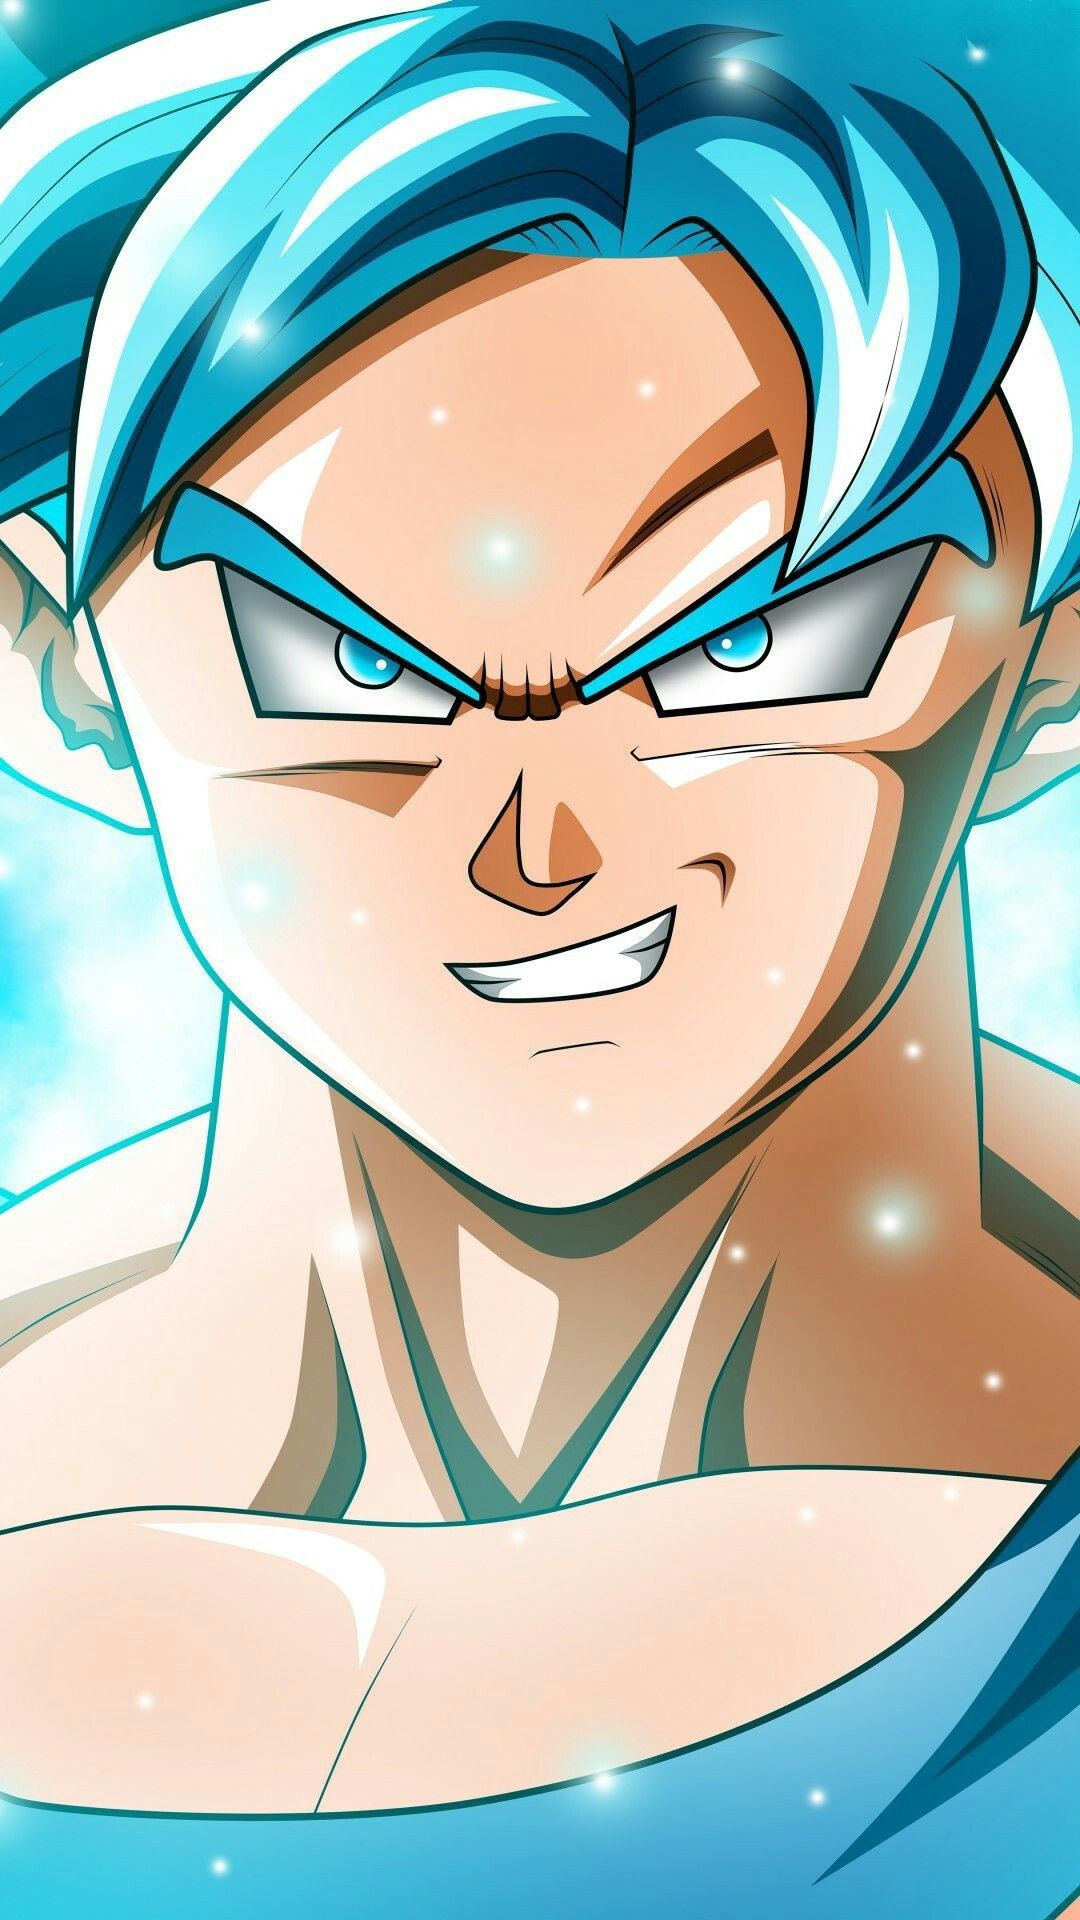 AMOLED Anime Wallpapers (With images) Dragon ball